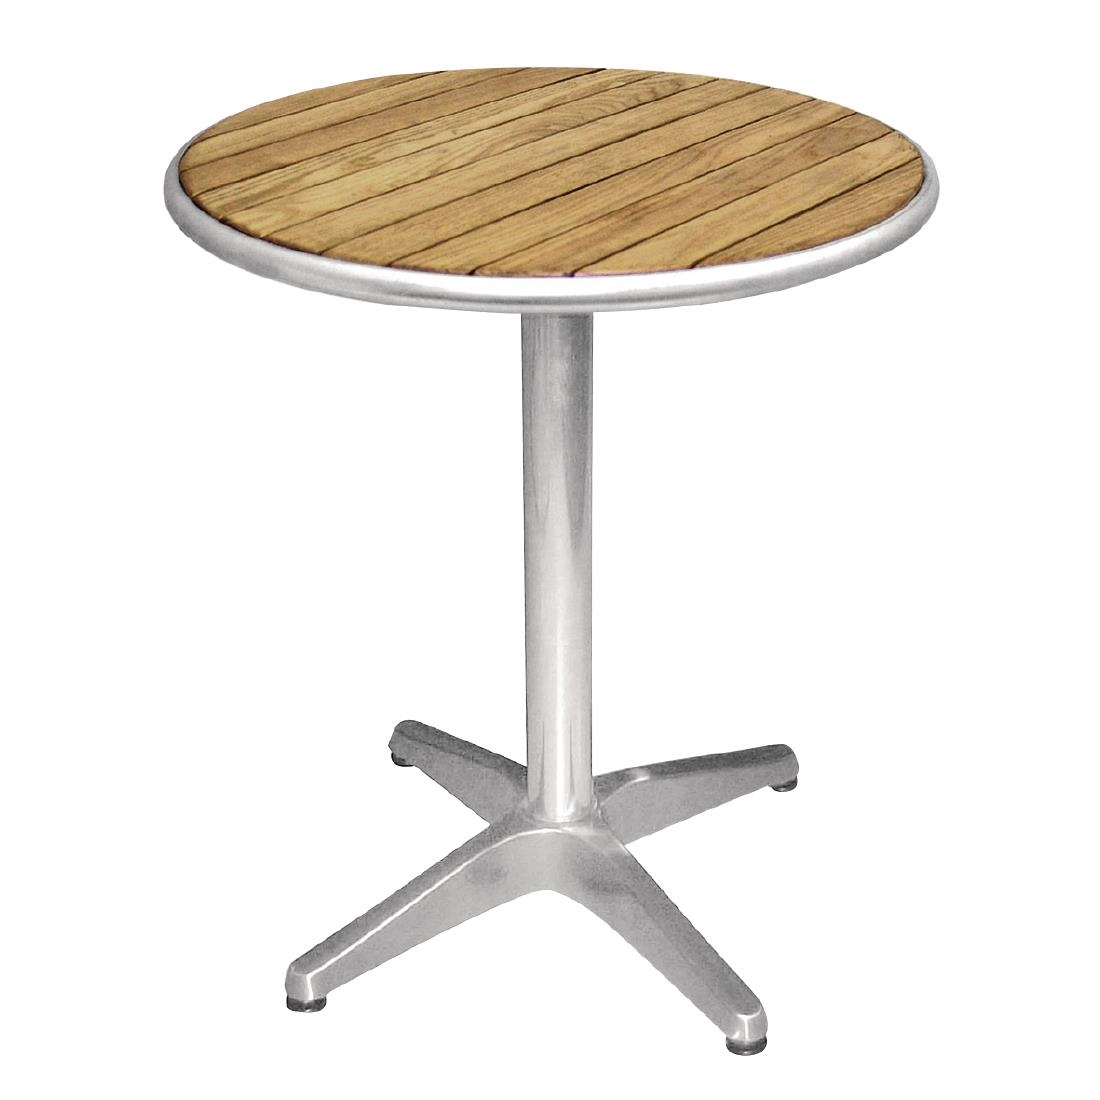 Ash Top Bistro Table U42 - Round